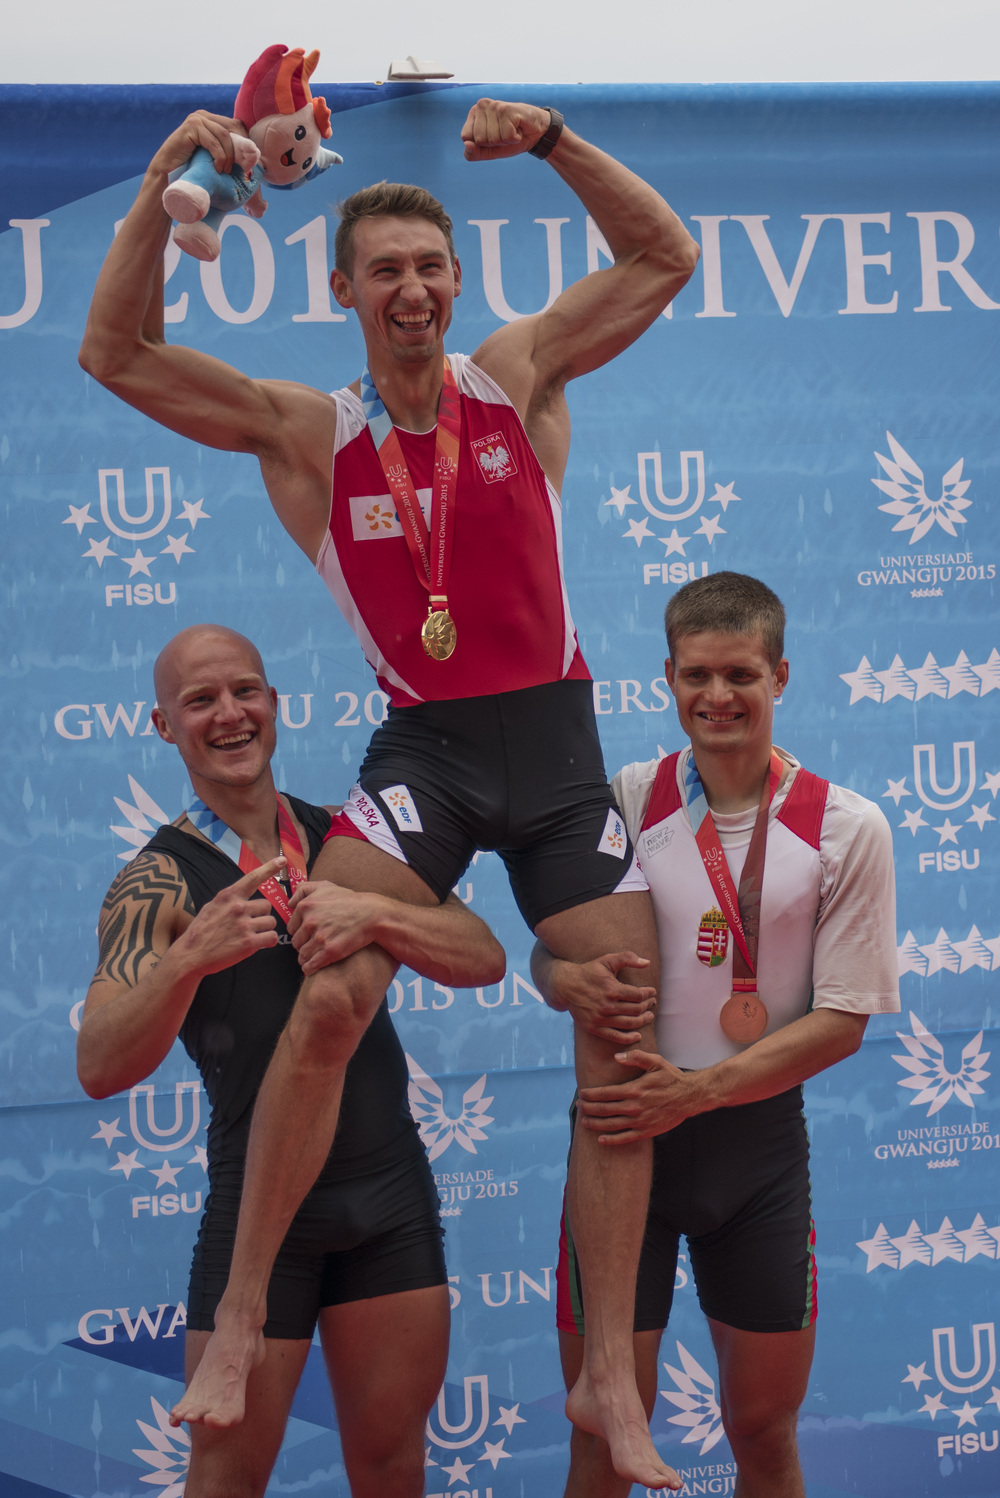 Toby Cunliffe-Steel - 2015 World University Games - A-Final - Photo © Rowing Celebration (23).jpg